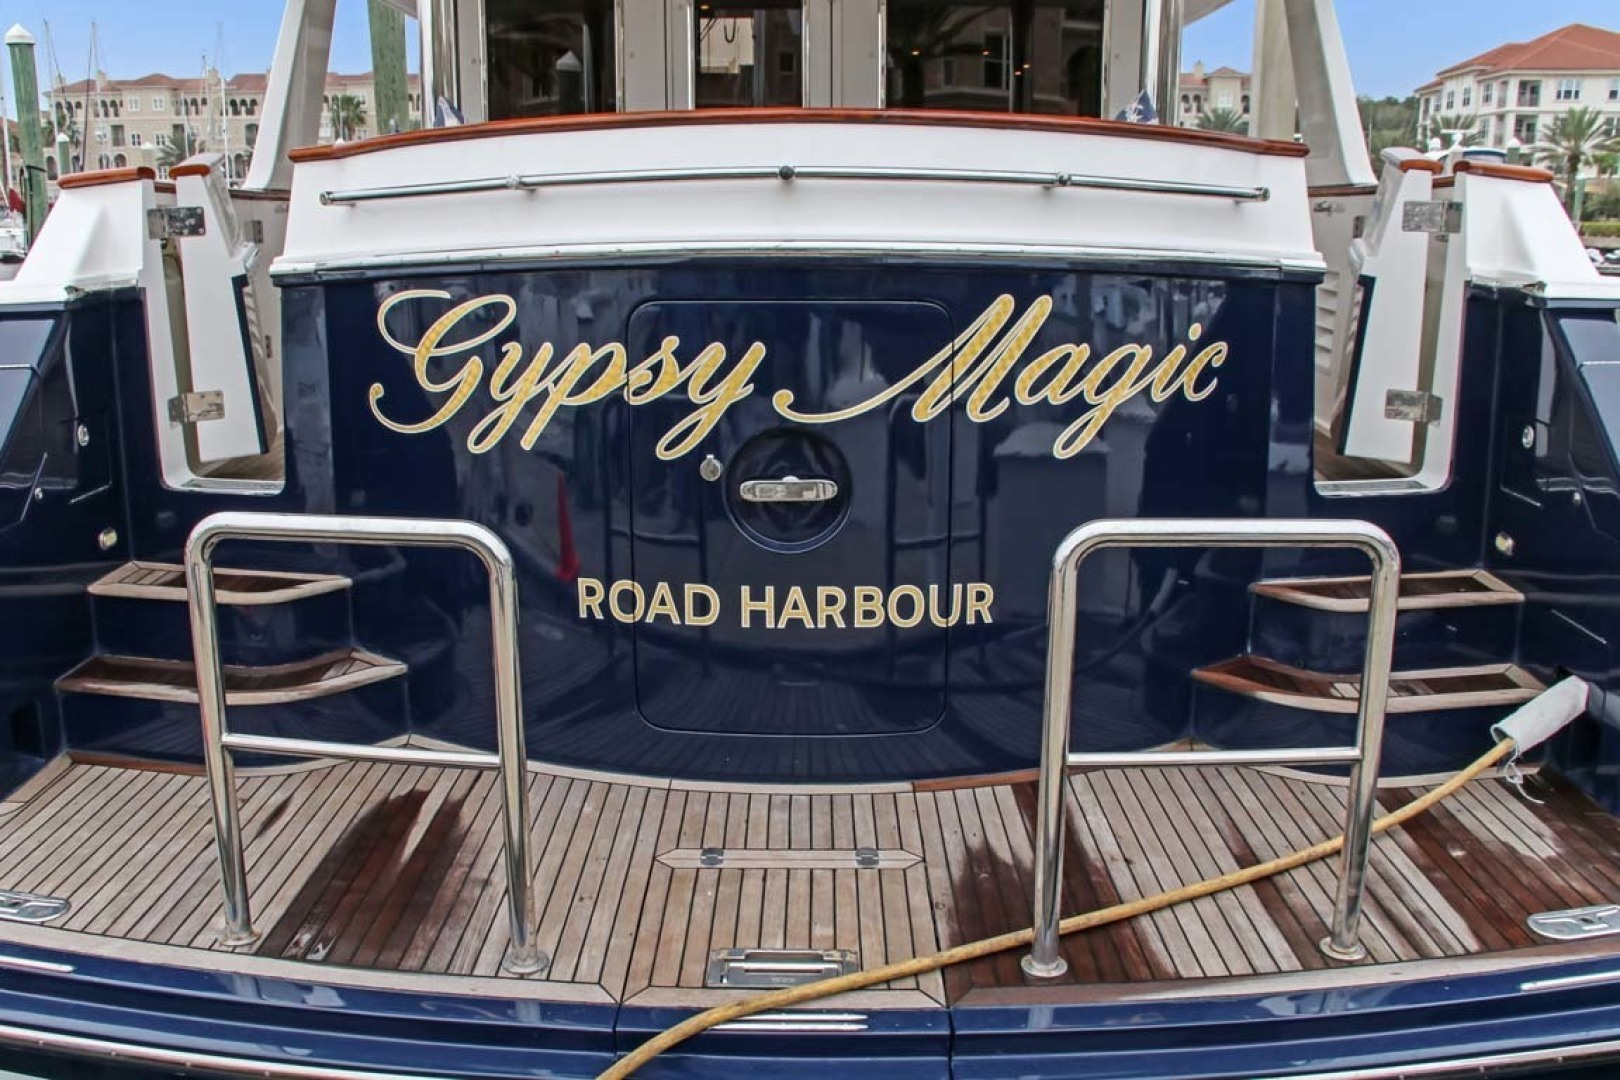 Selene-60 Ocean Trawler 2010-Gypsy Magic Jacksonville-Florida-United States-1346792 | Thumbnail